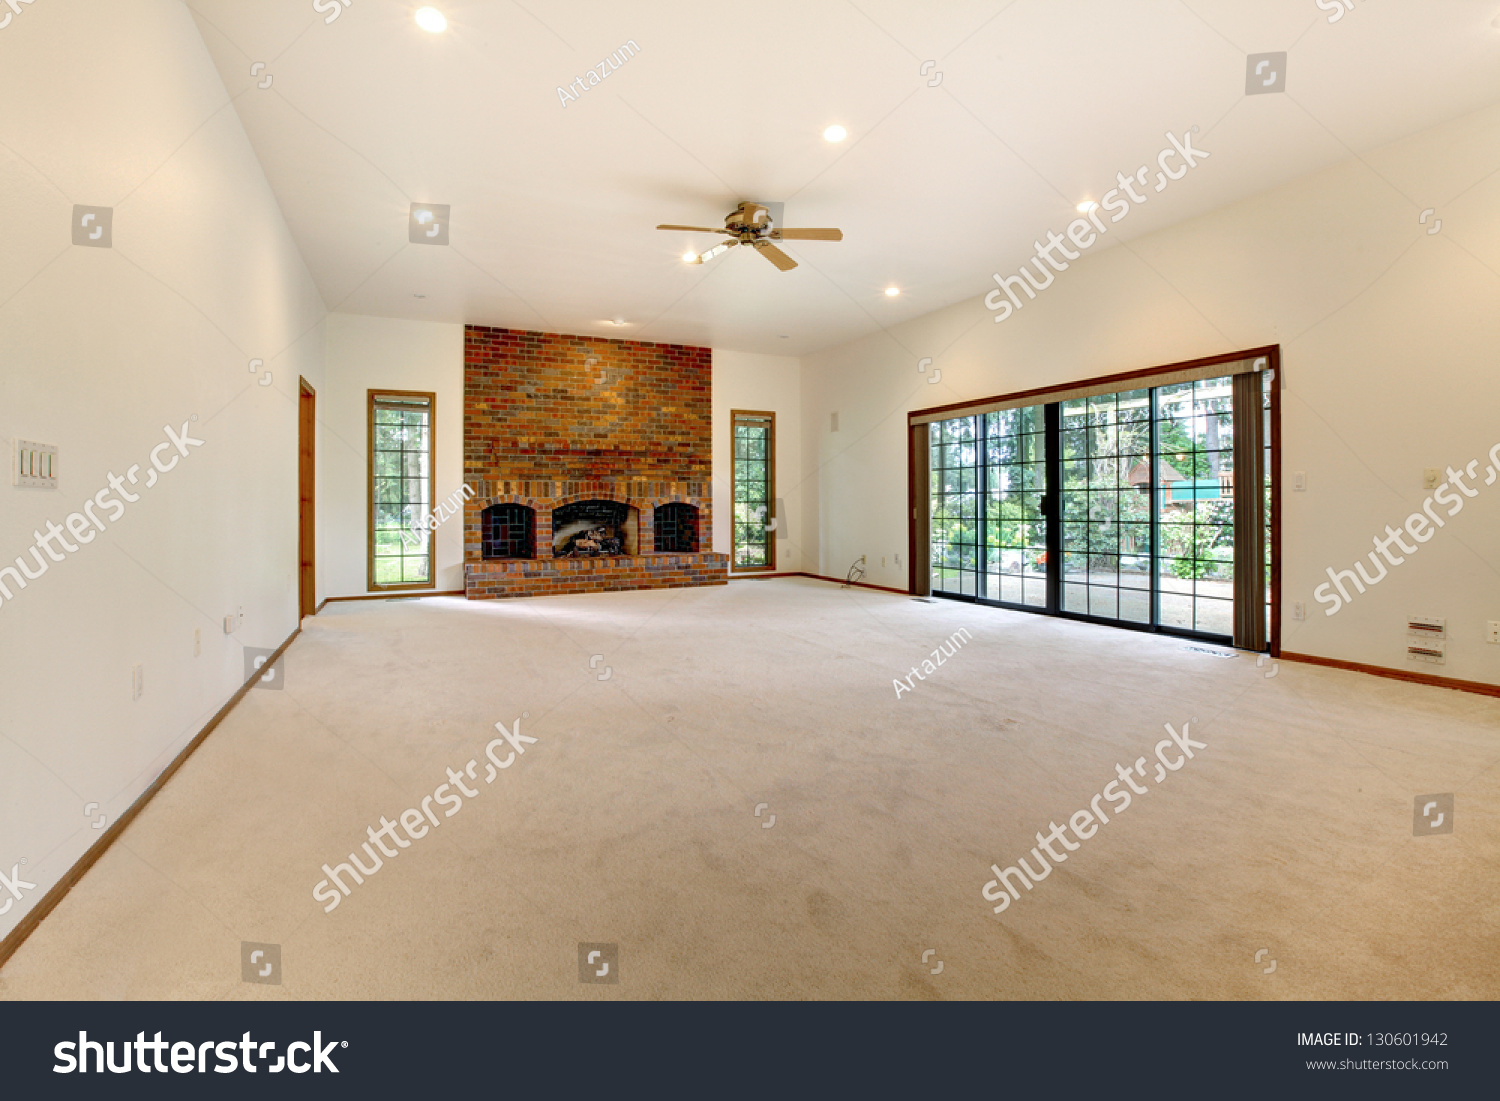 Very Large Empty Living Room With Brick Fireplace And Sliding Doors To The Back Yard